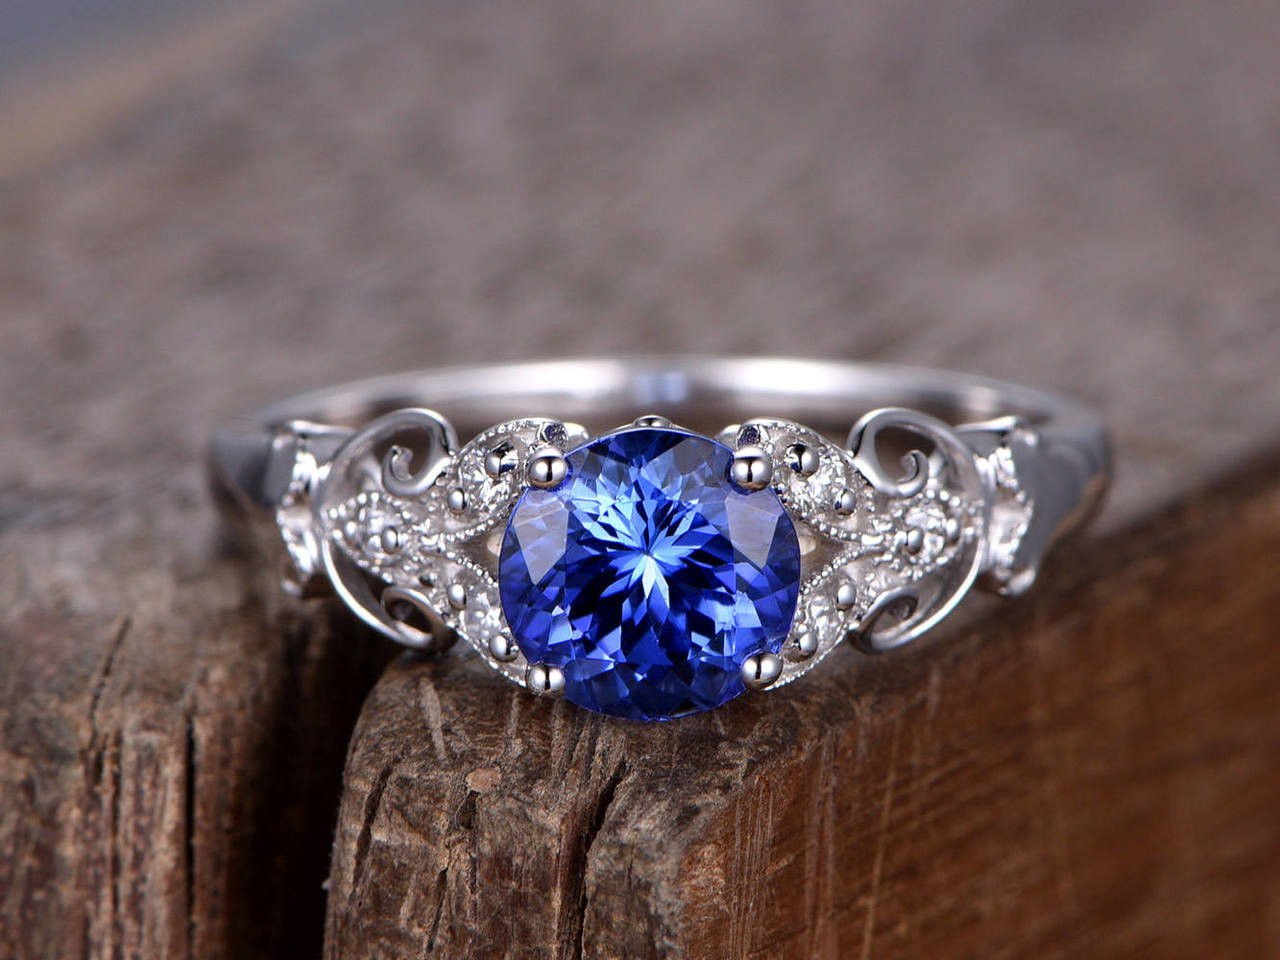 Sapphire ring,Art Deco Engagement ring,6mm round created blue gem,Antique Floral sterling silver wedding band,white gold plated,Bridal ring